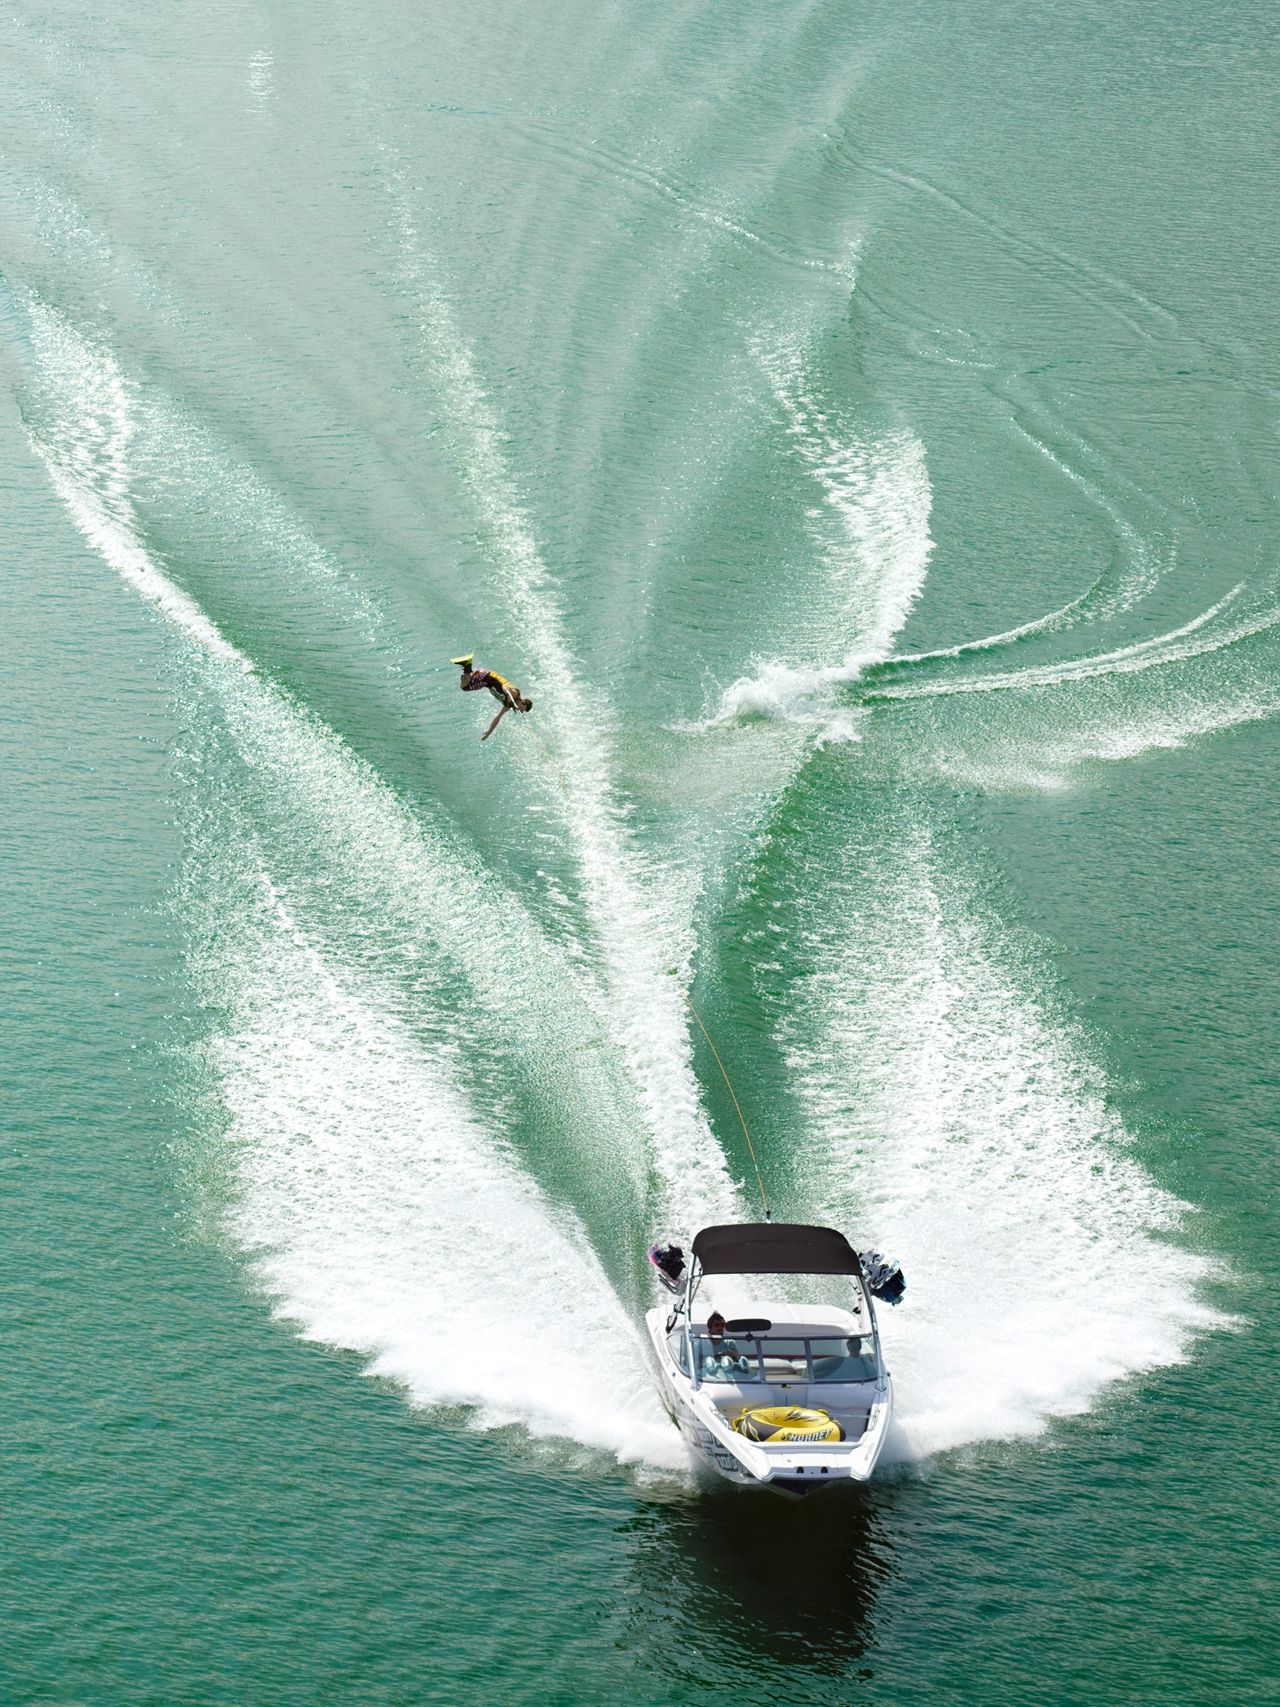 Phase One Gallery Wakeboarding Surfing Water Skiing